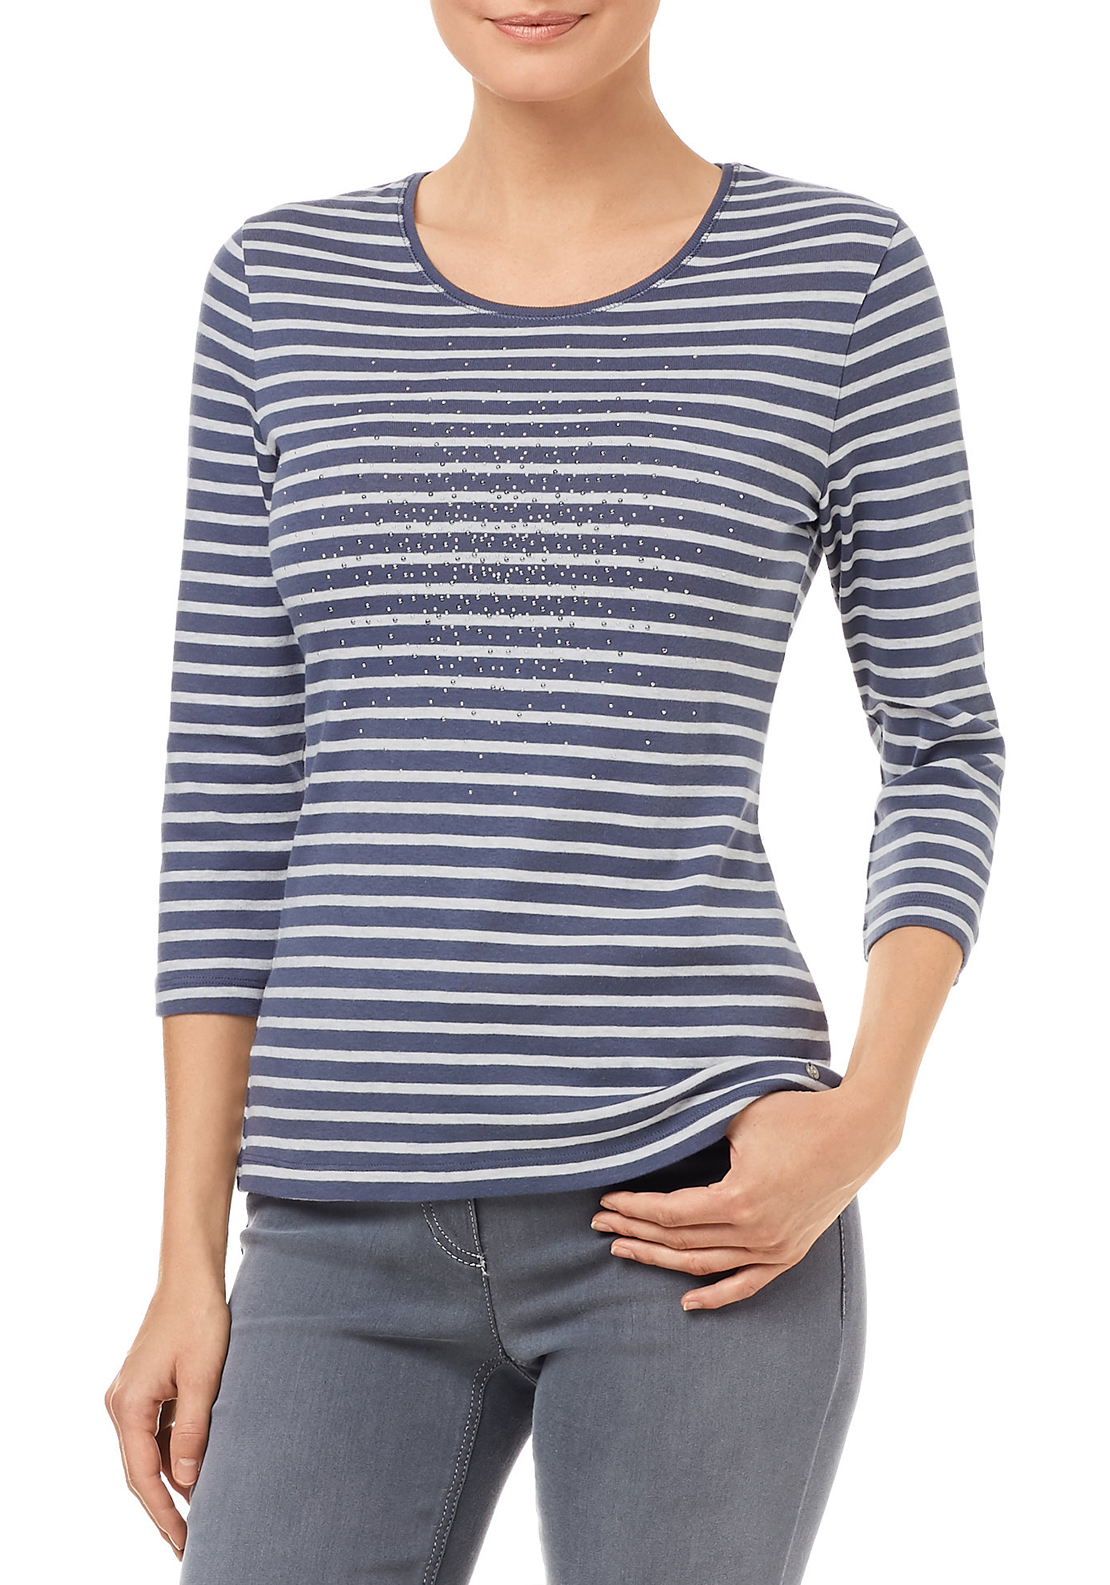 Gerry Weber Cotton Striped Top with Studded Design, Blue And Grey